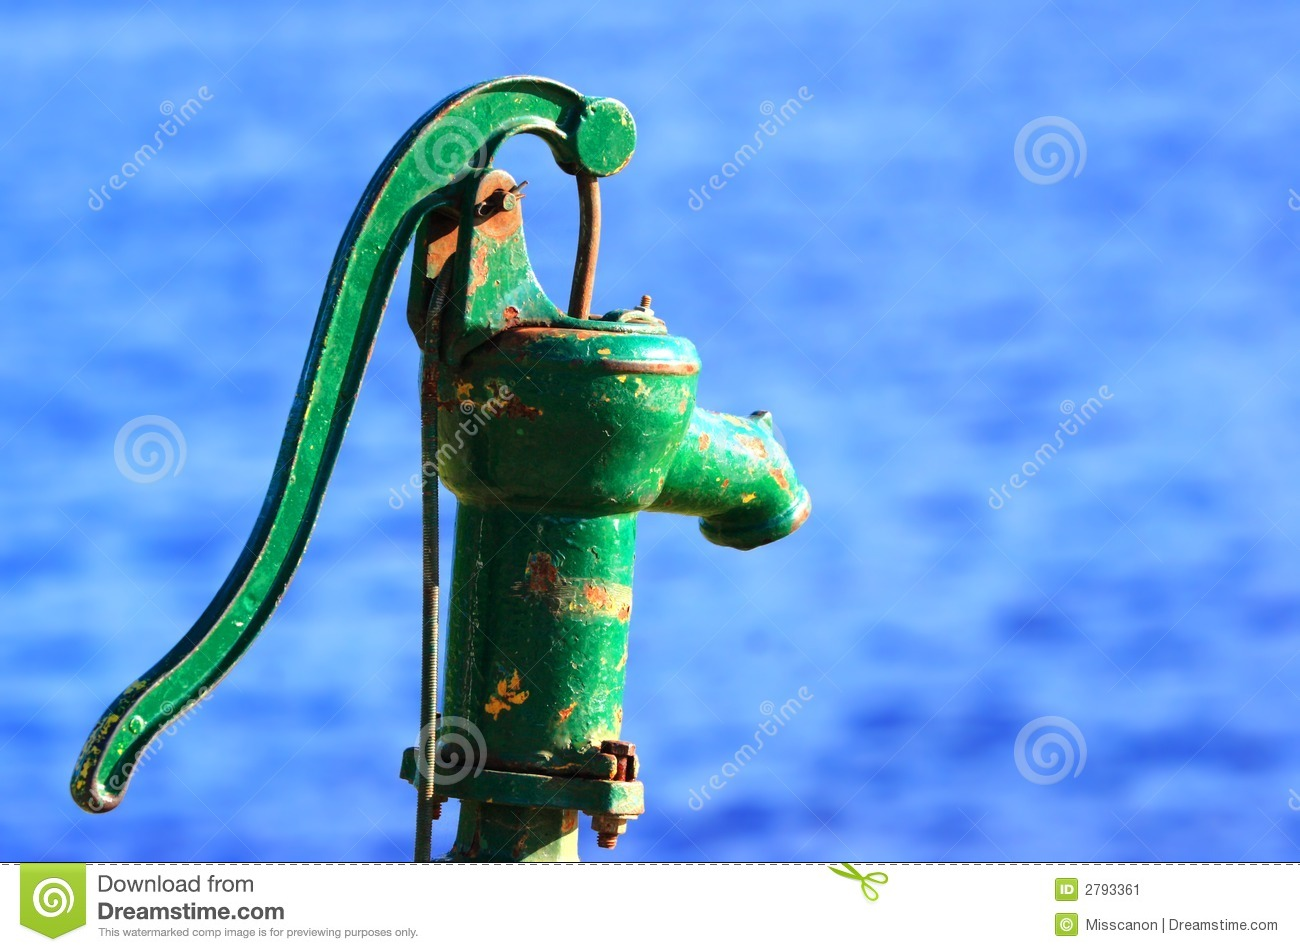 Colorful Outdoor Water Spigot Parts Inspiration - Sink Faucet Ideas ...